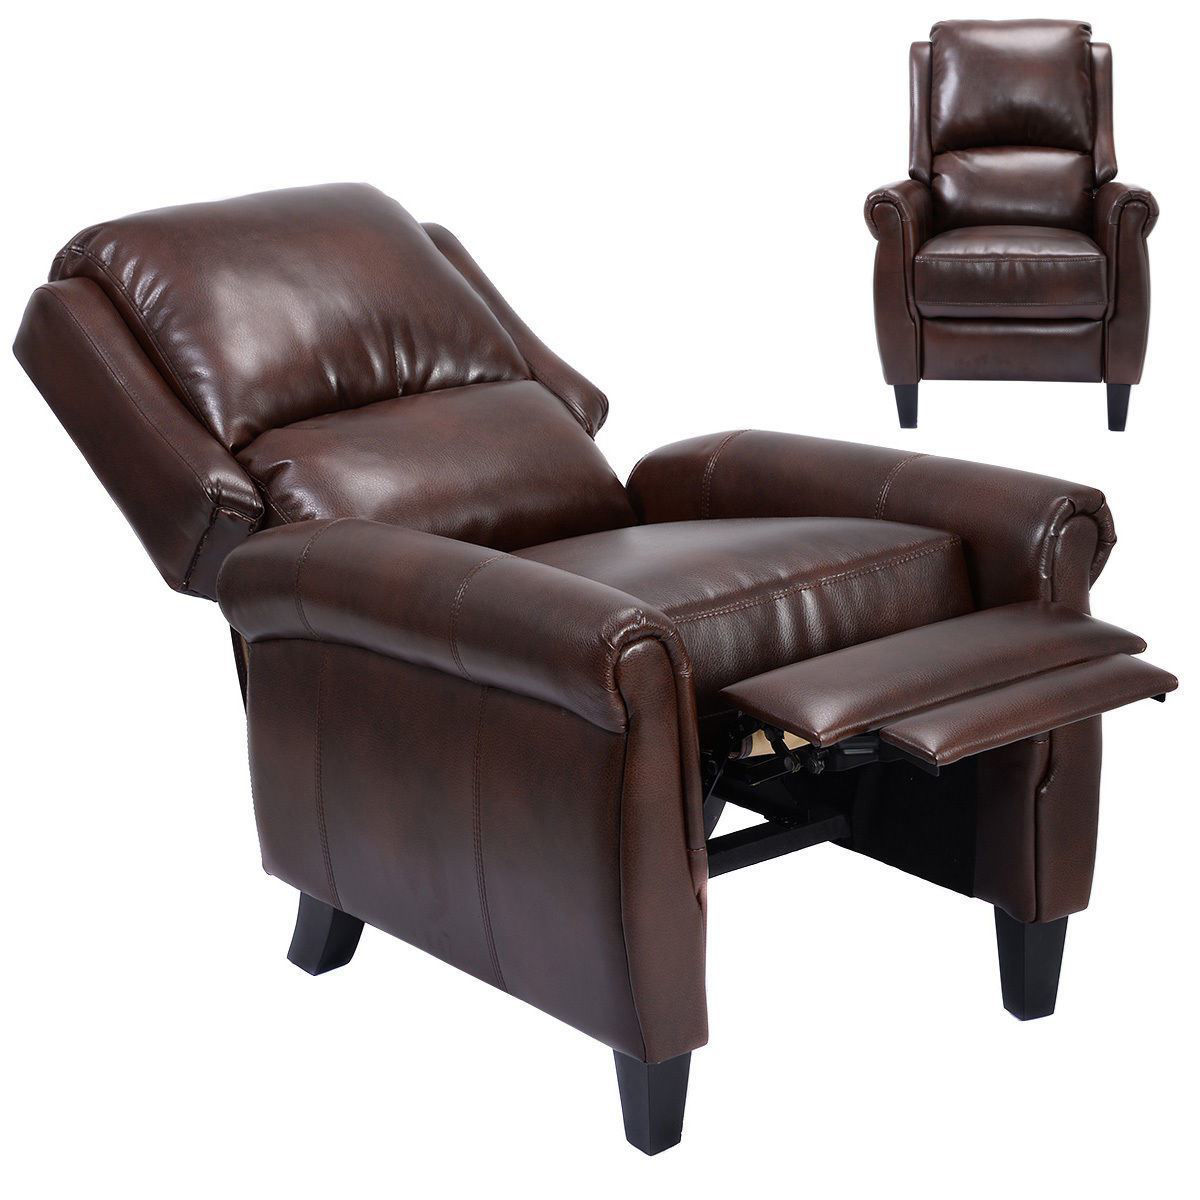 Picture of Living Room Recliner Chair with Leg Rests